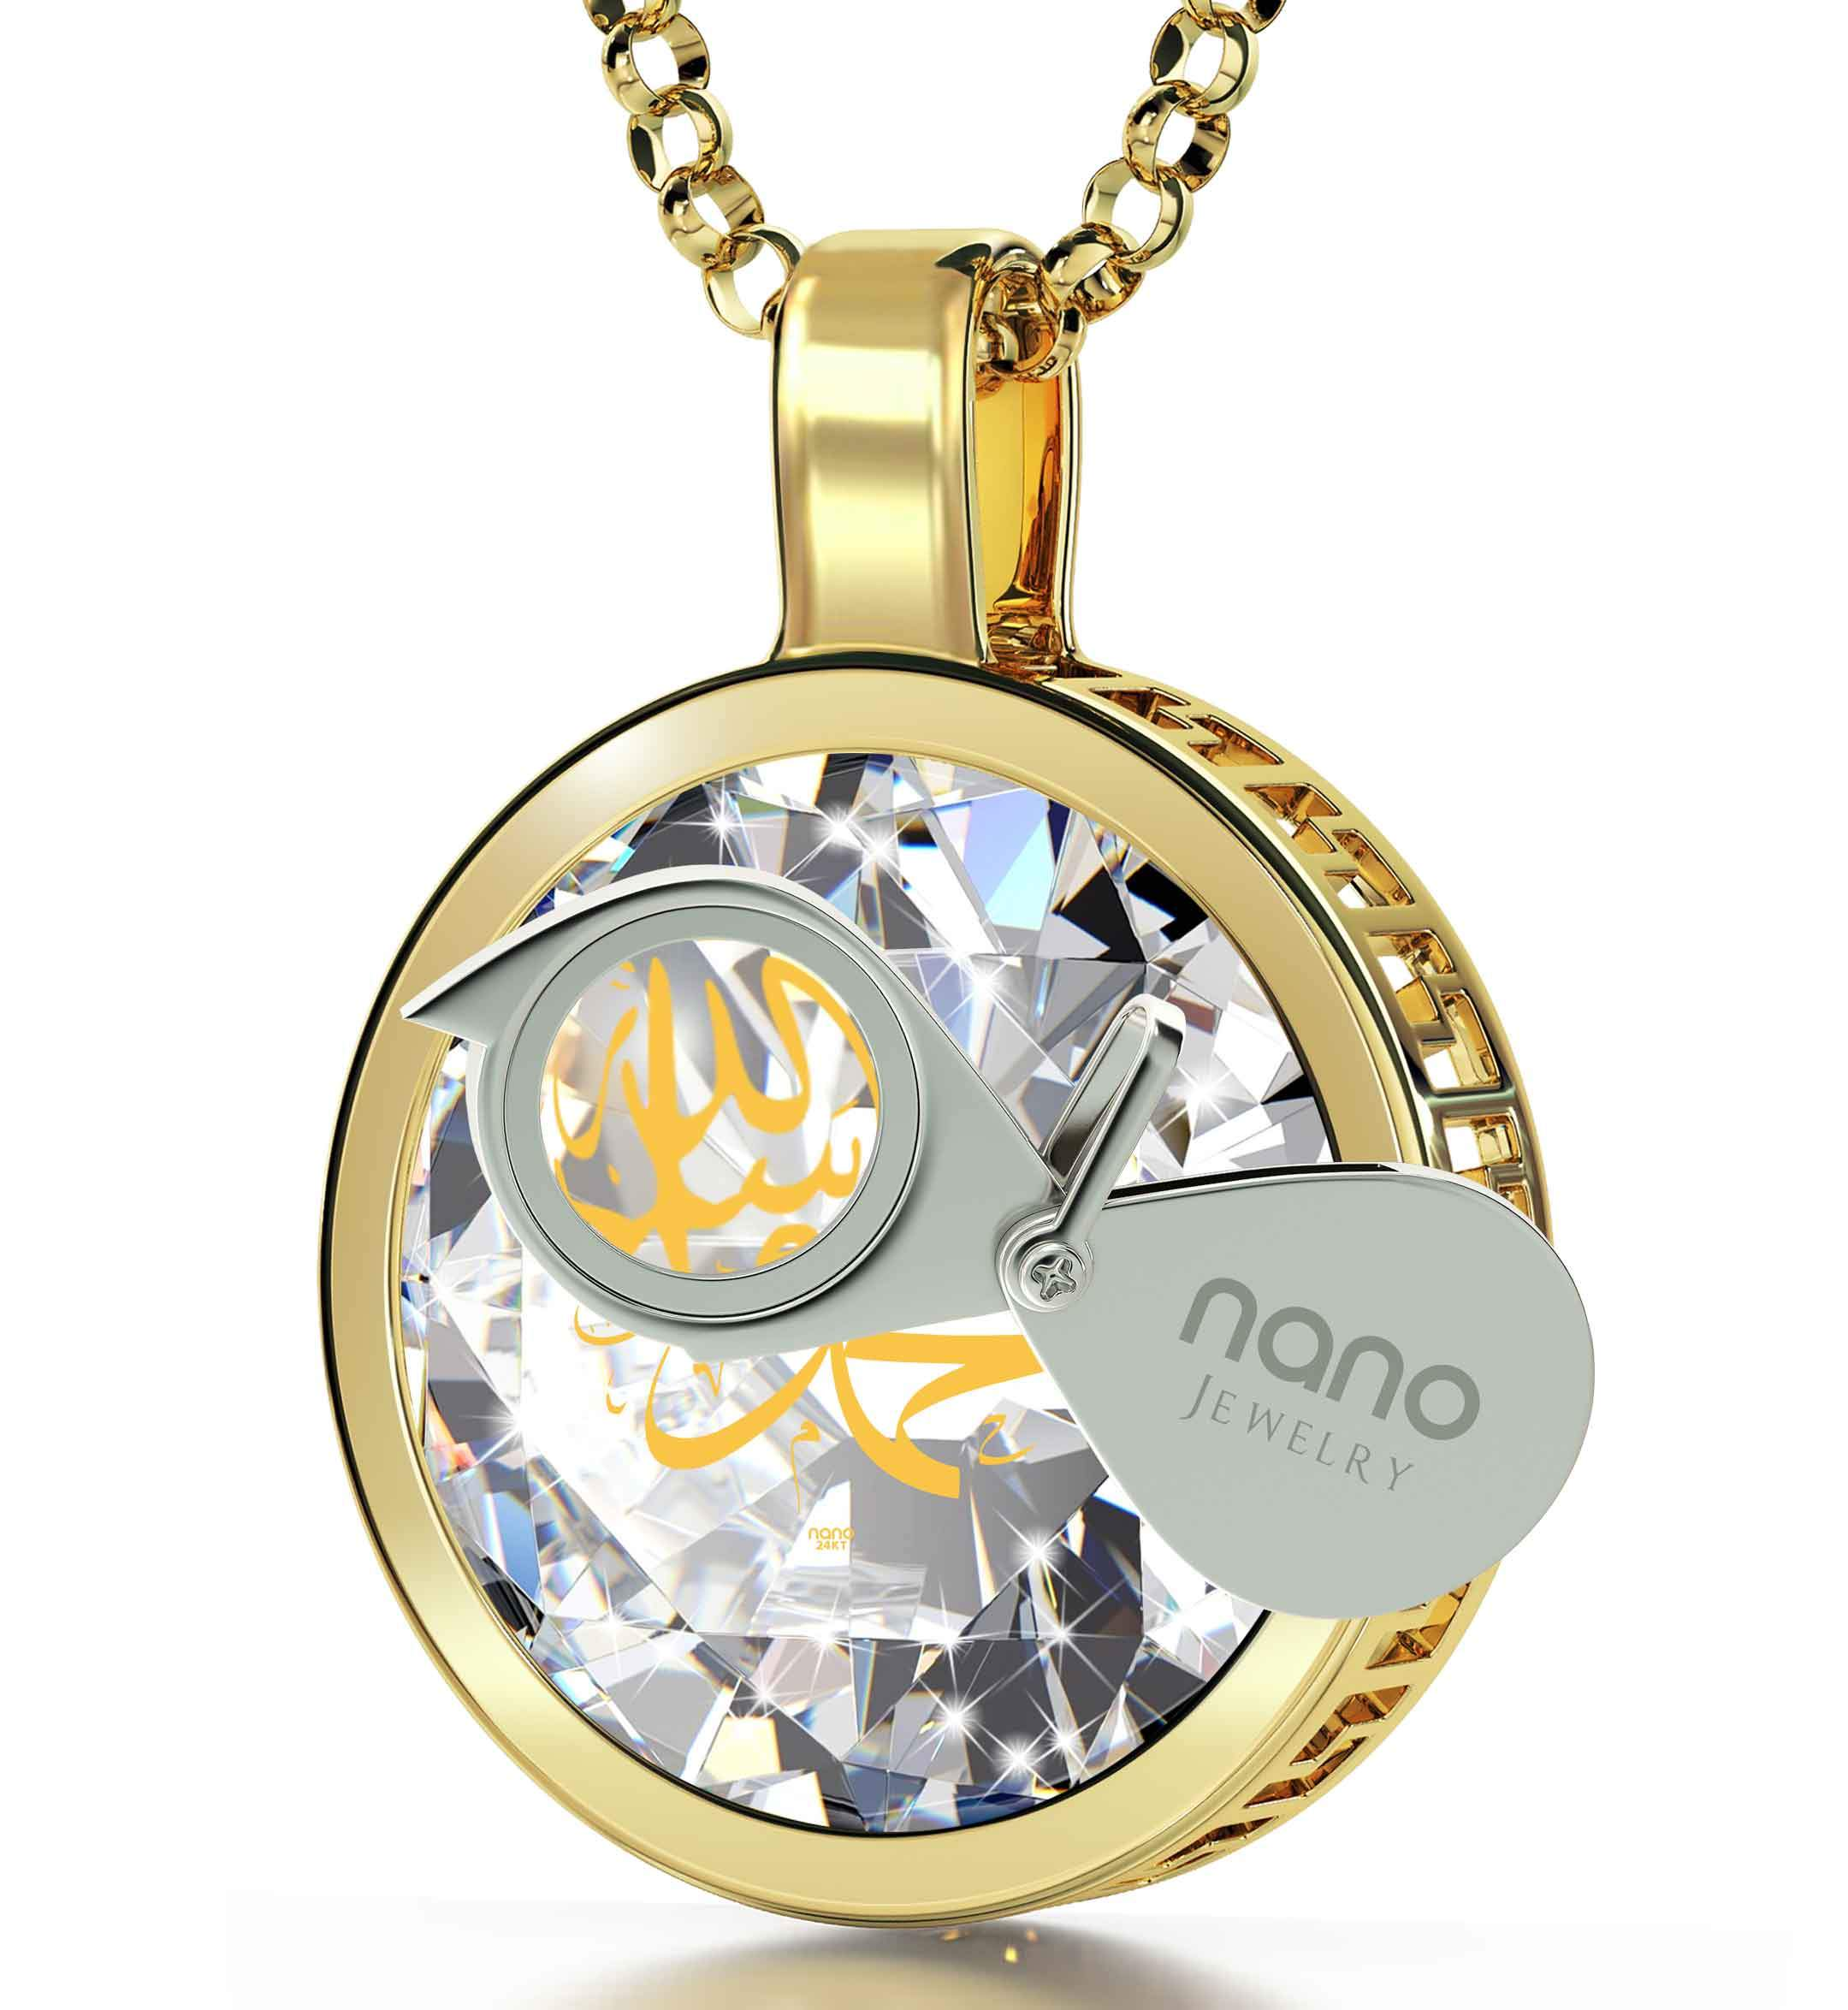 """Muhammad"" in 24k Imprint, Islamic Jewelry for Her, Arabic Necklace, Engraved Pendant, Nano"